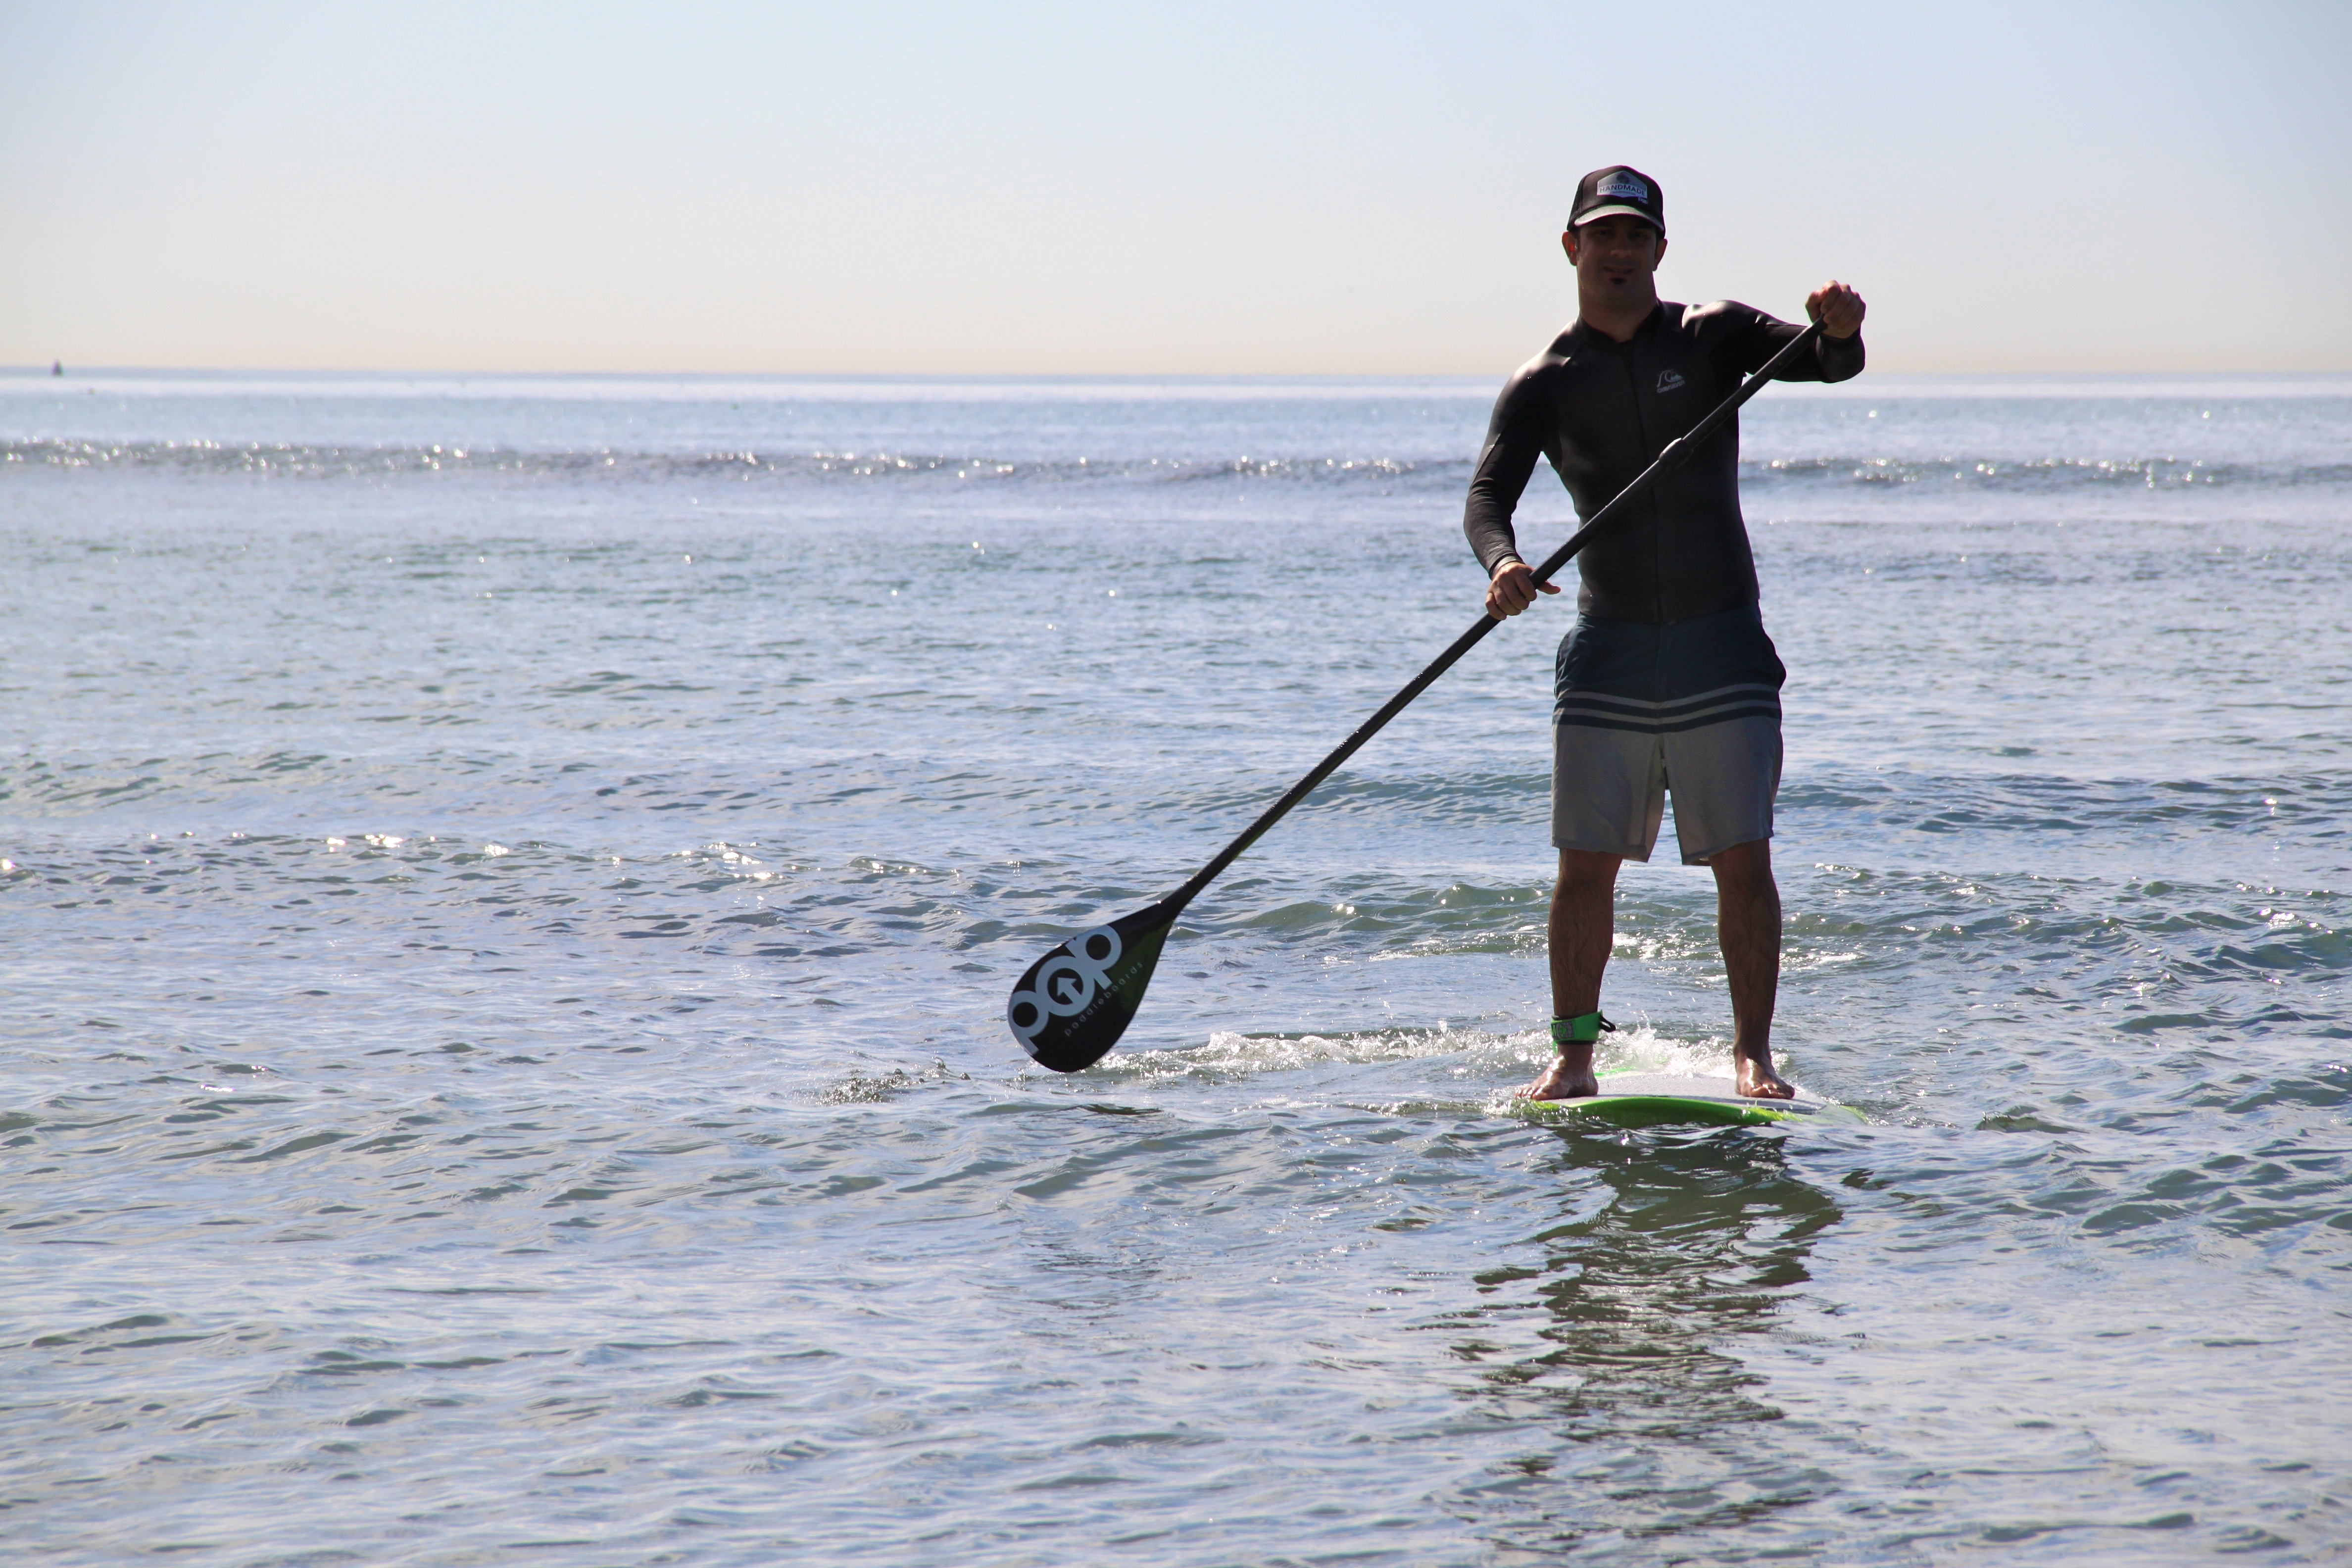 Stand Up Paddleboarder Nick Lanfranco stays in shape during a severe wave drought.